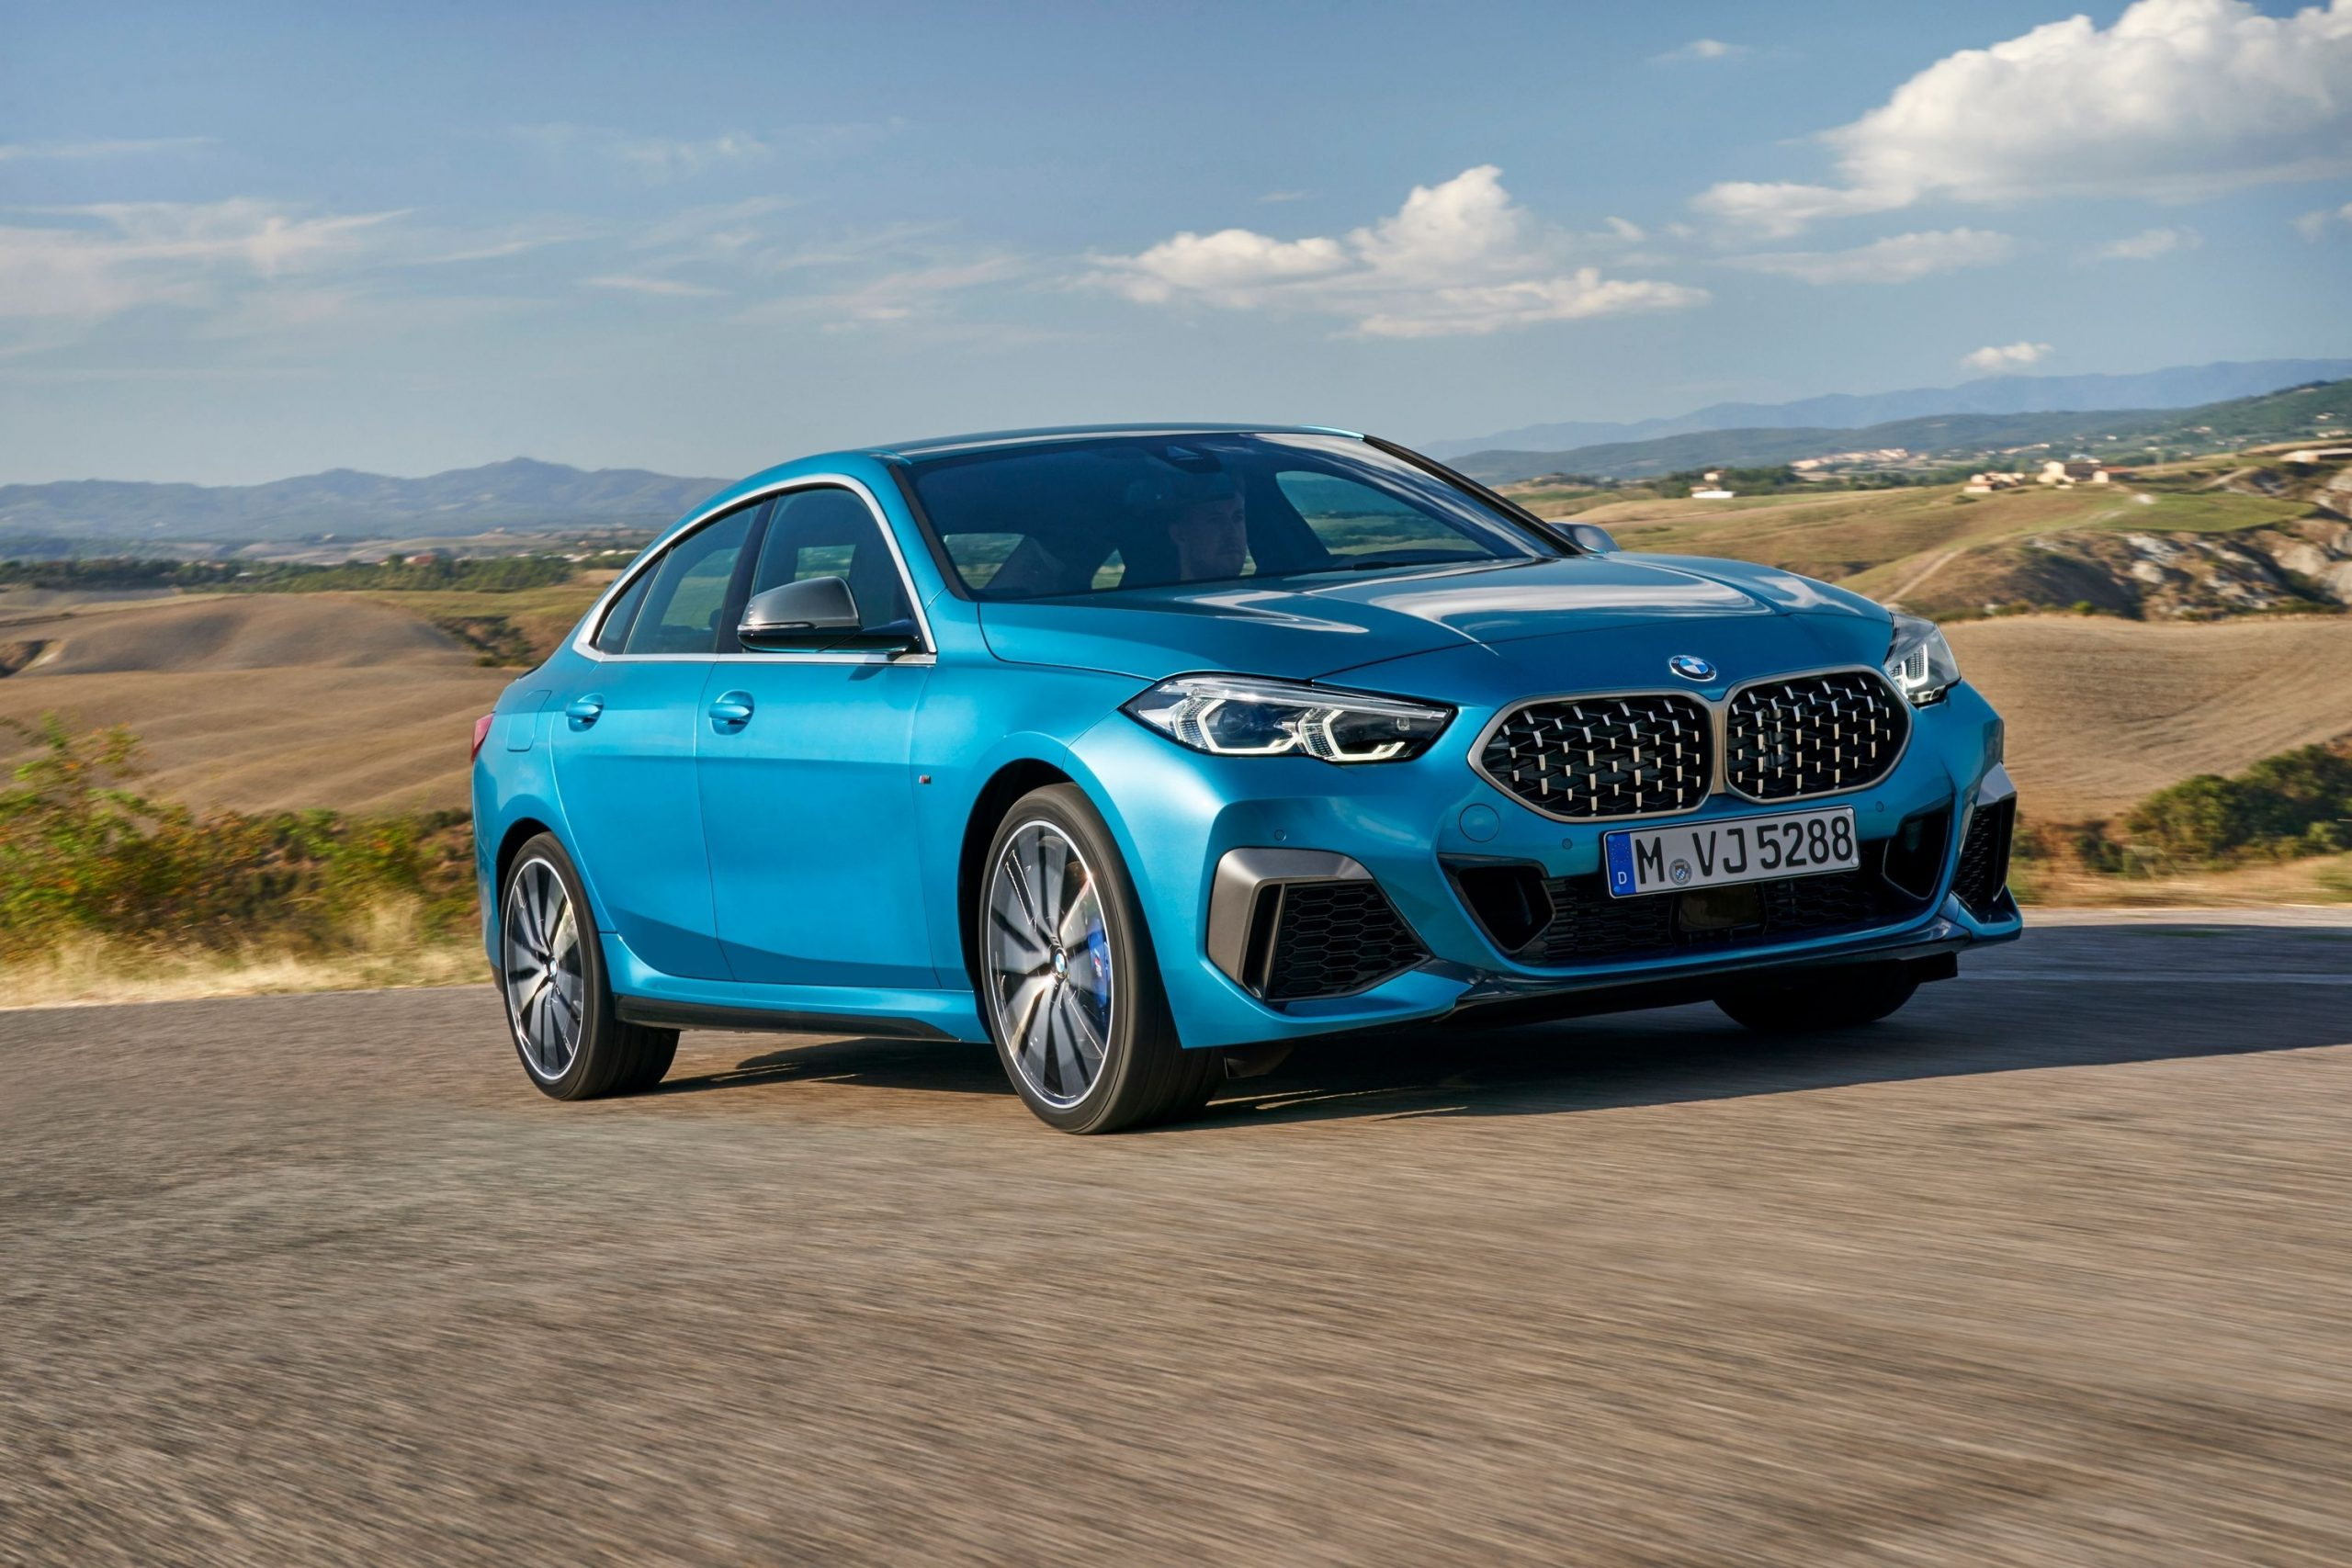 2021 Bmw 2-Series Gran Coupe Review, Pricing, And Specs